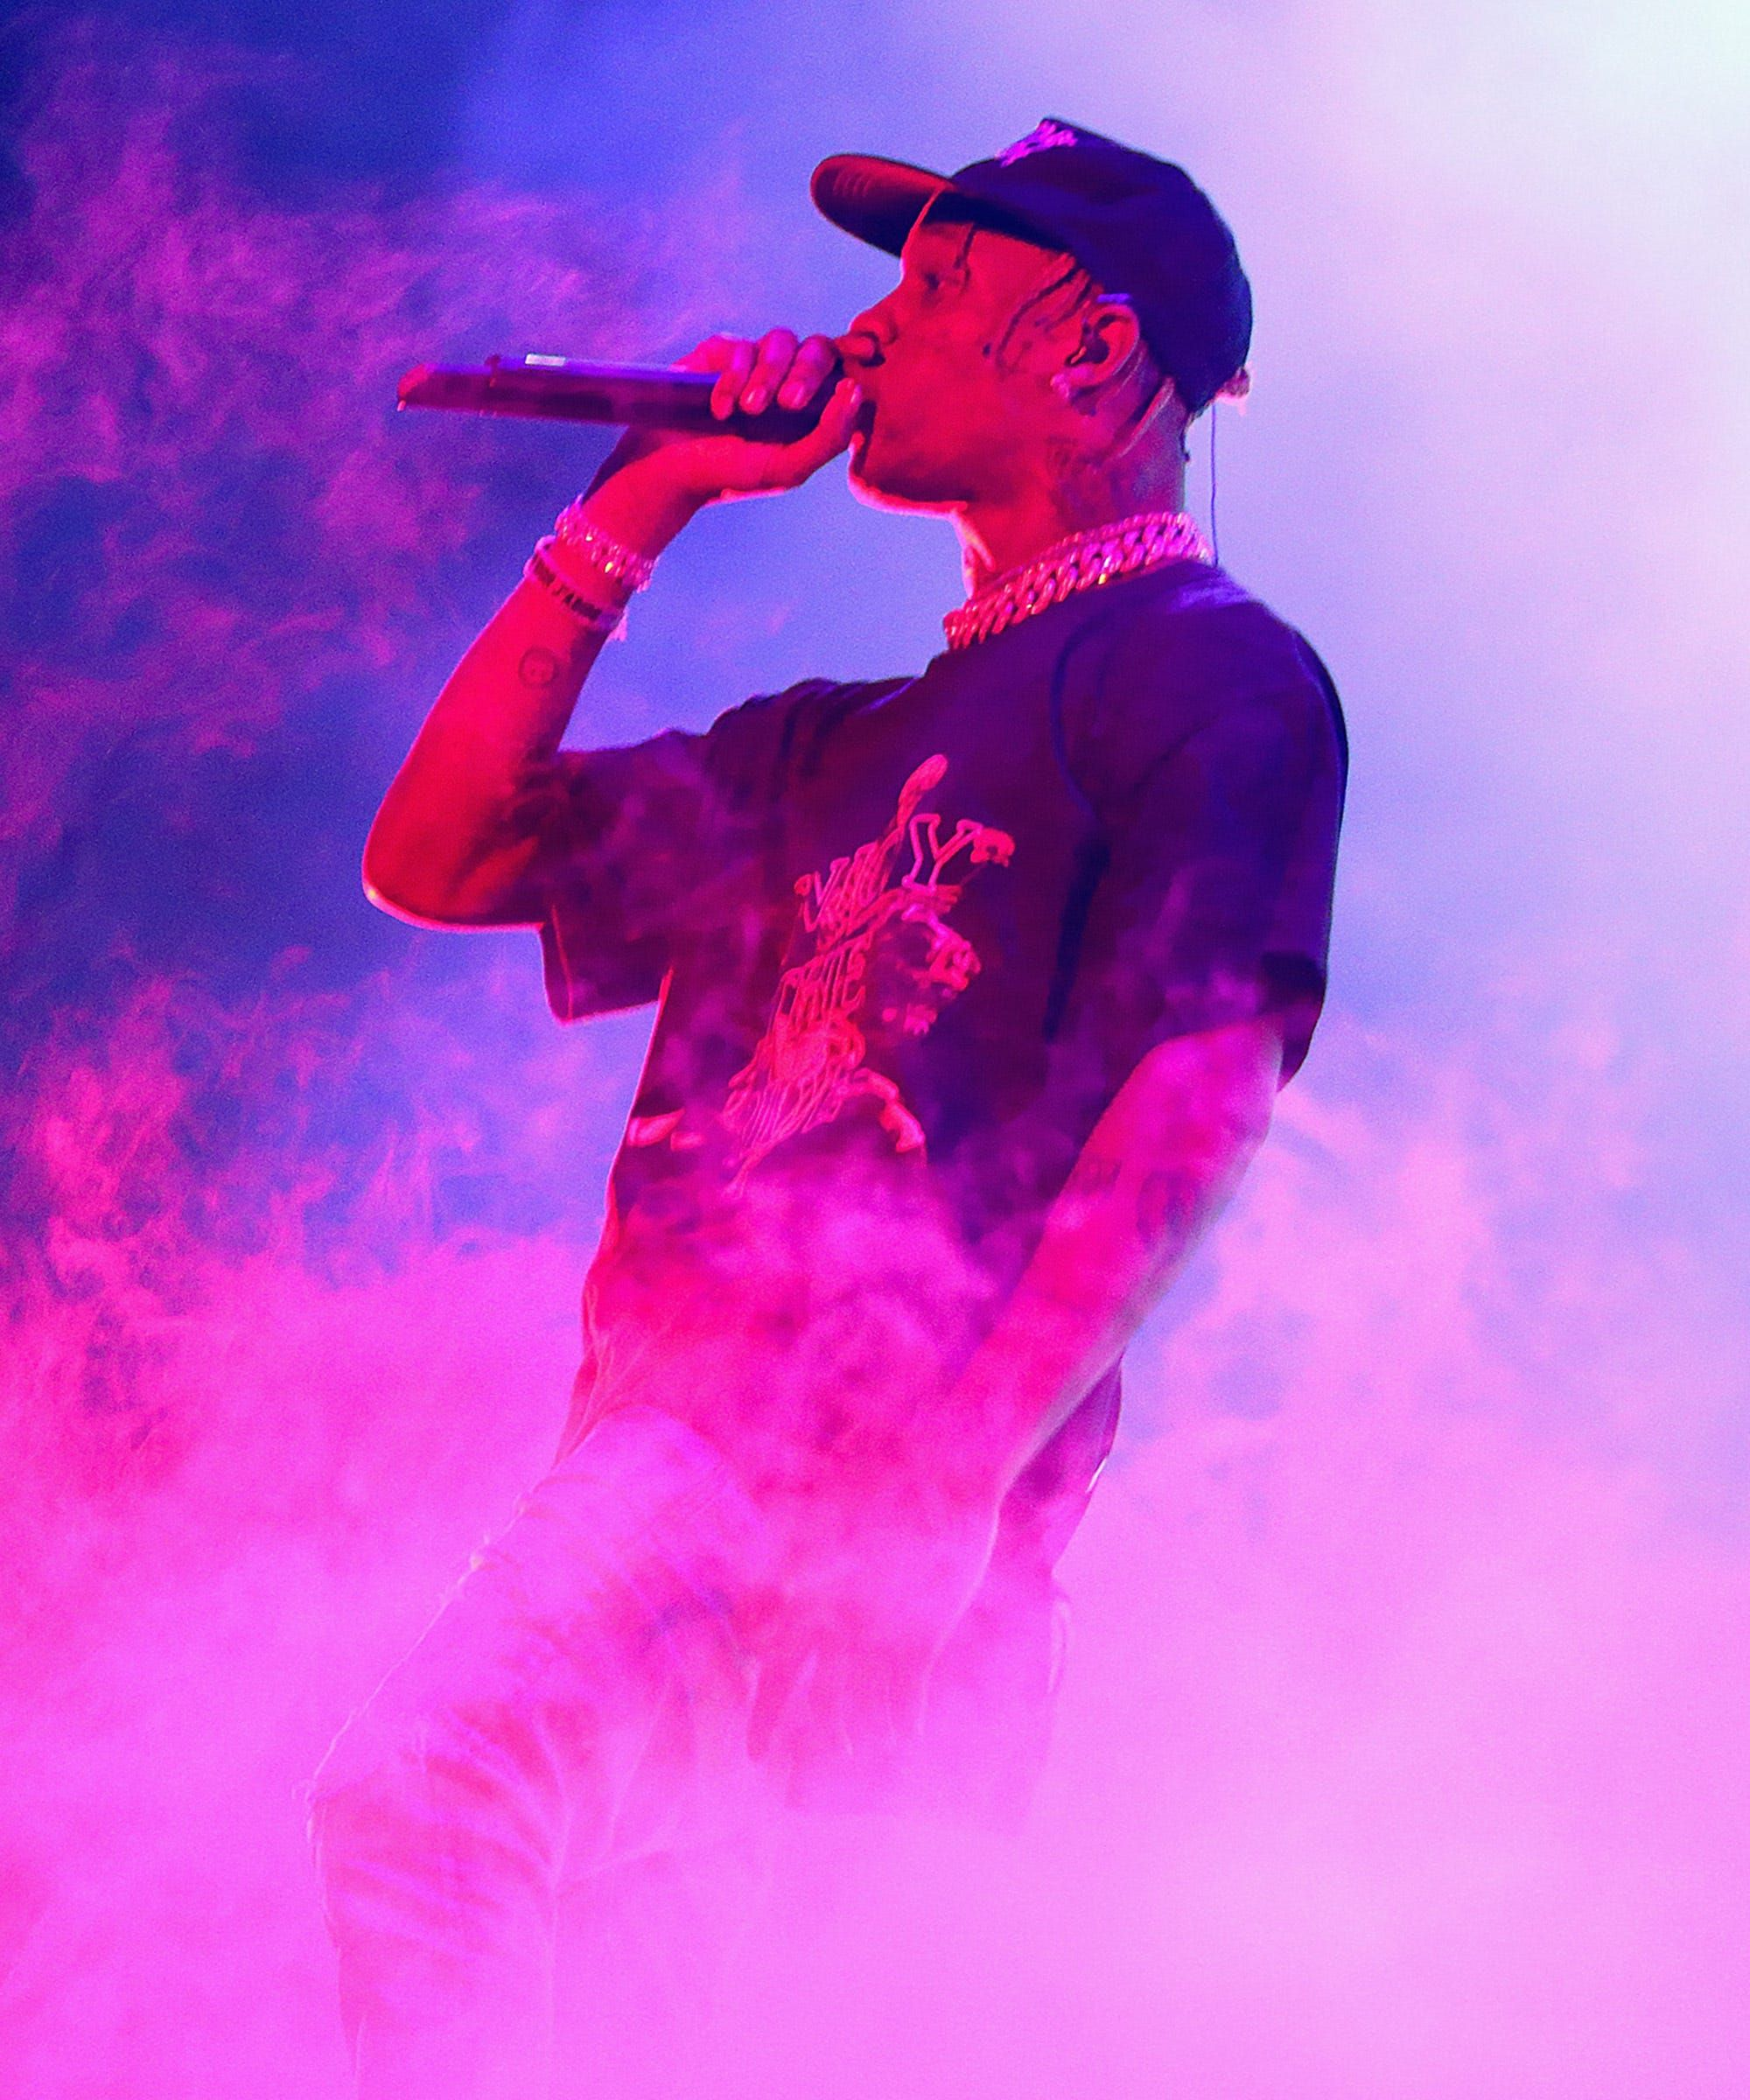 Travis Scott S Super Bowl Performance Just Got More Controversial In 2020 Picture Collage Wall Travis Scott Wallpapers Travis Scott